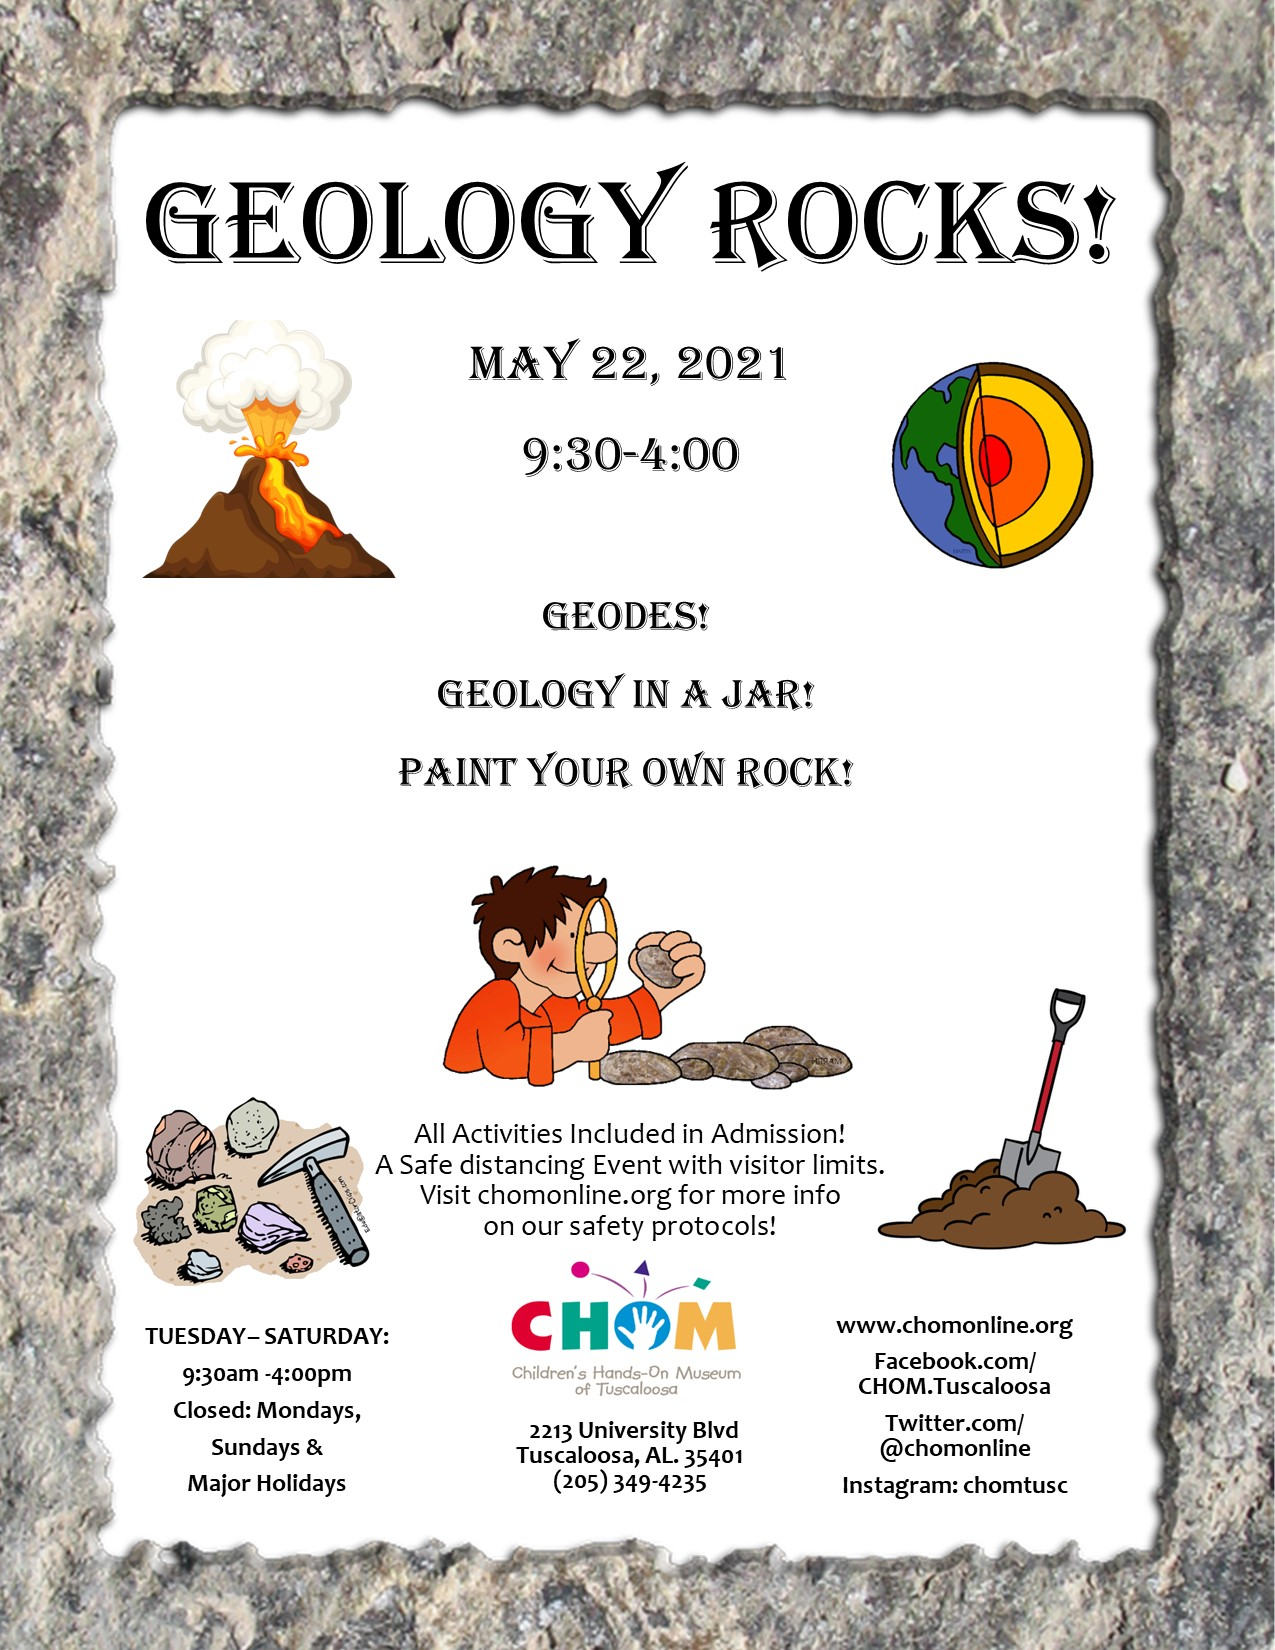 Geology Rocks at CHOM!